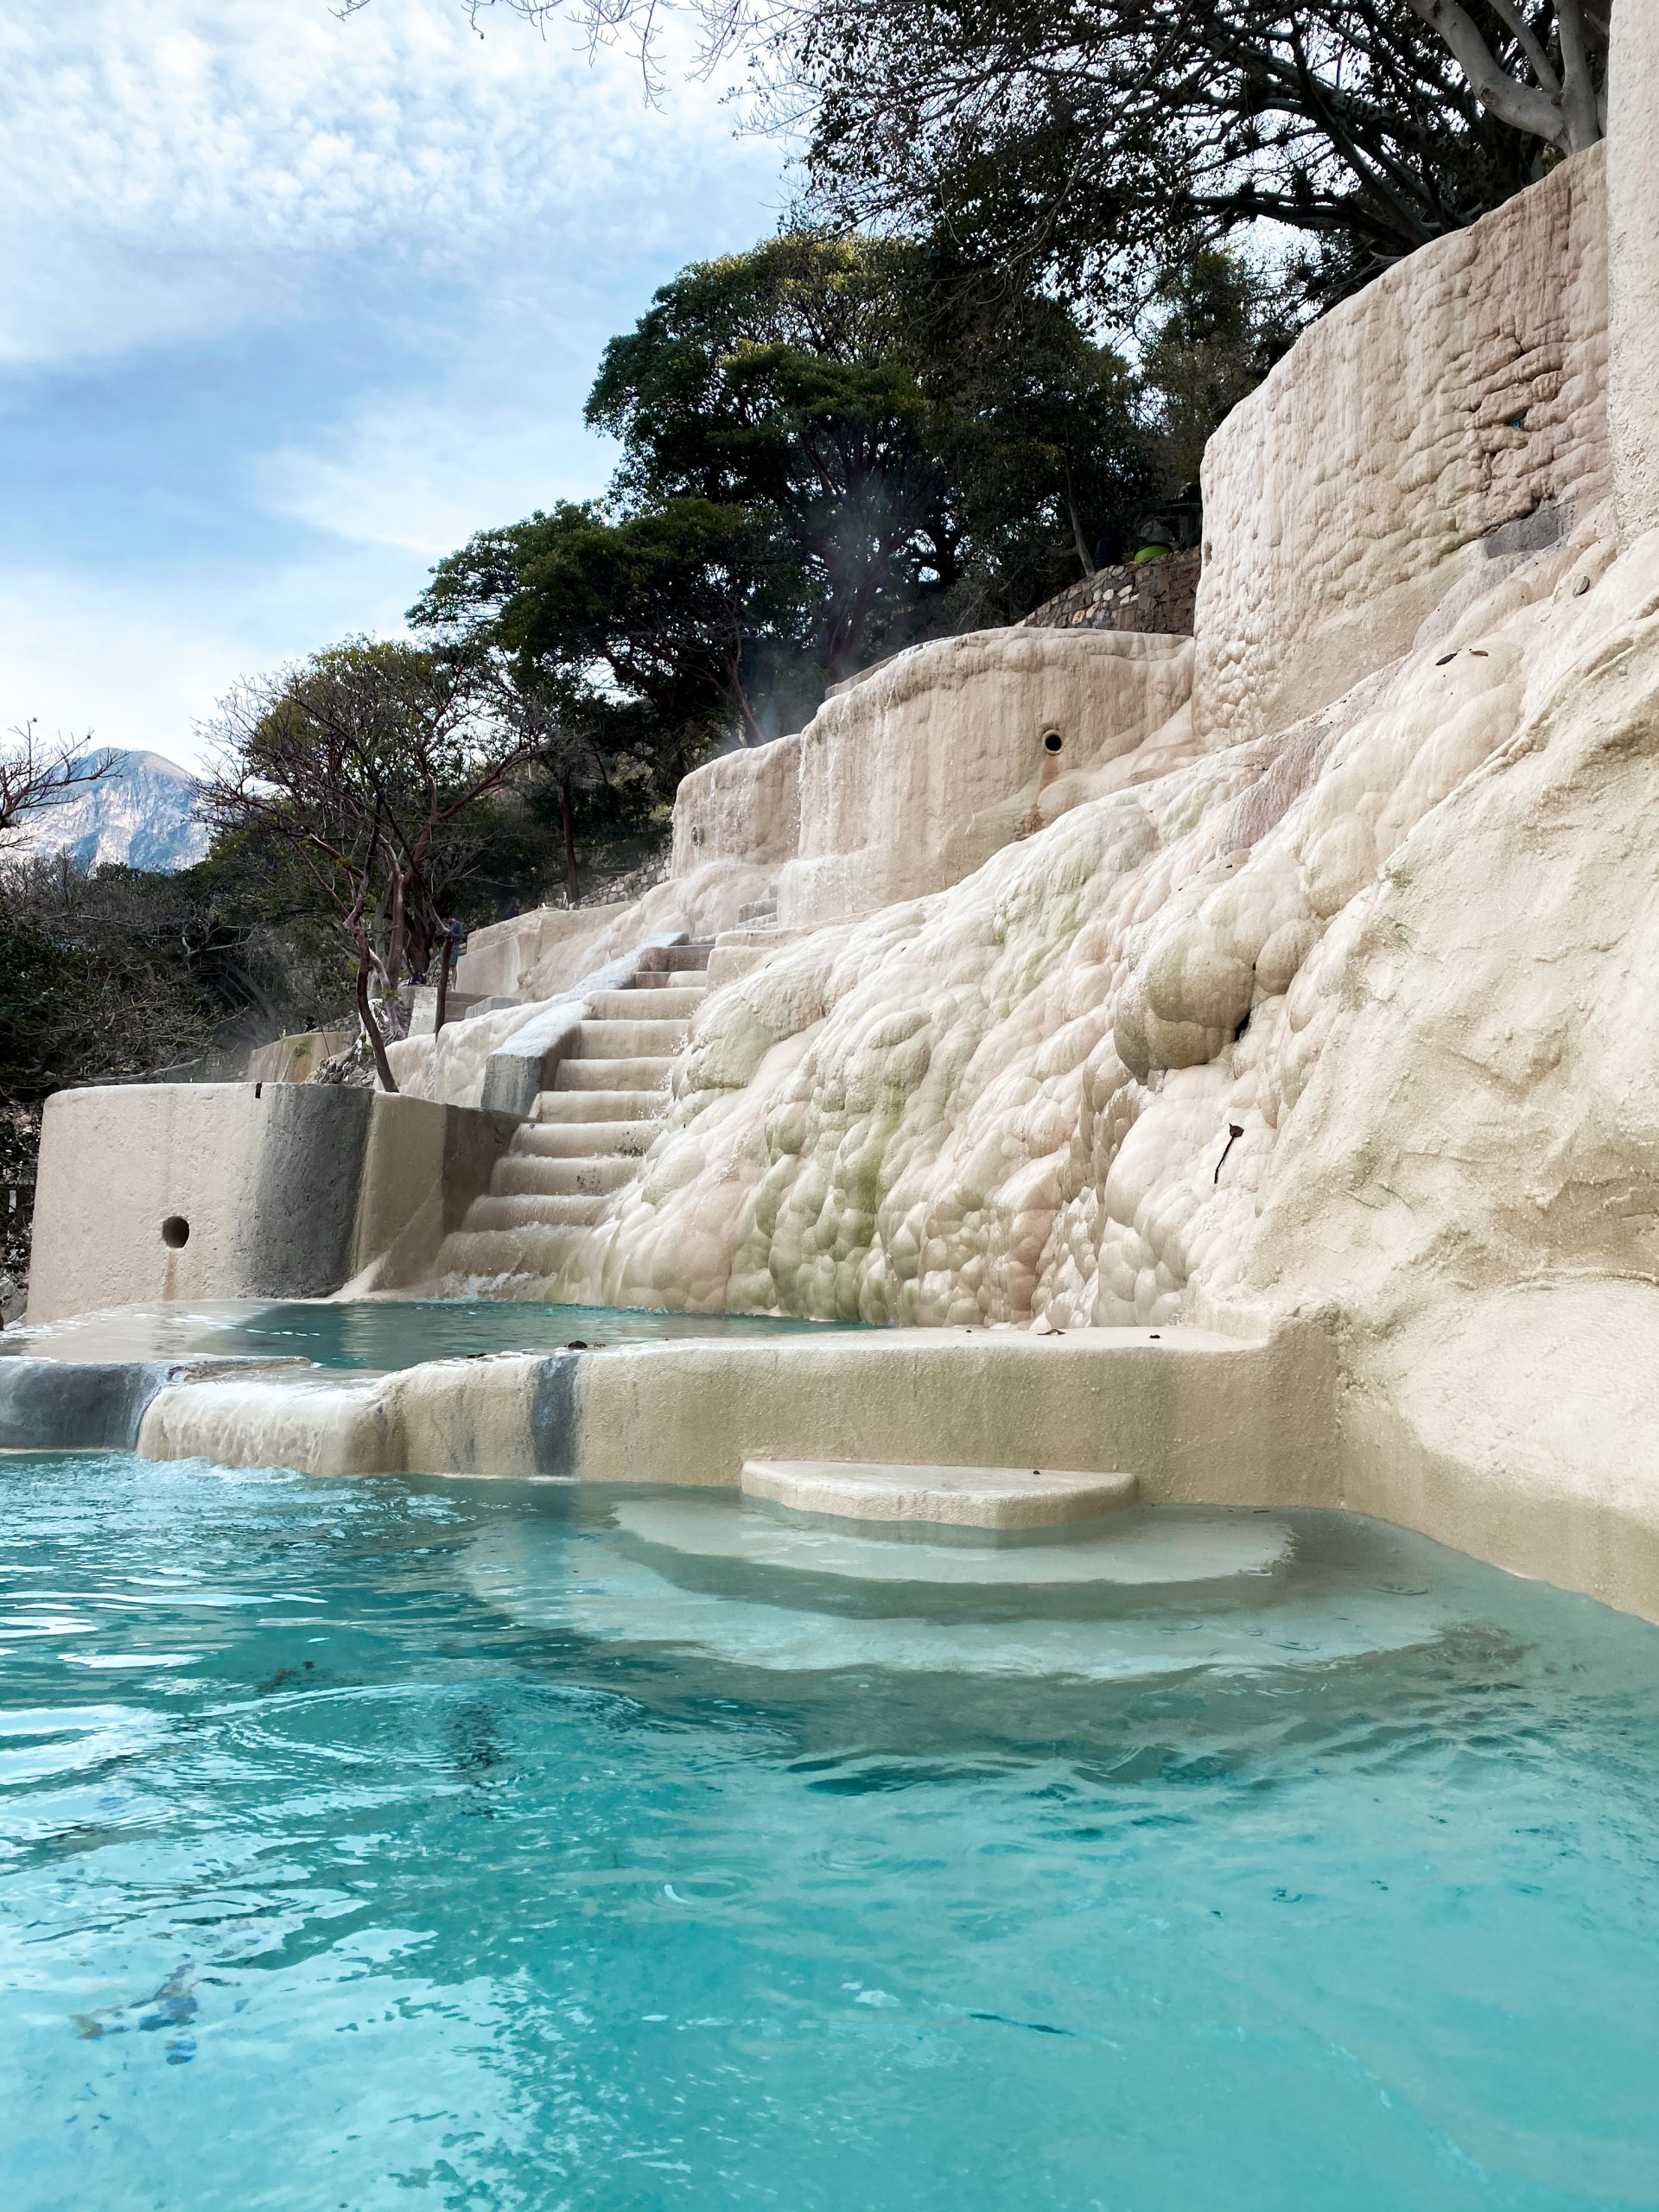 grutas tolantongo turquoise blue water carved cliff side thermal pool natural hot springs hidalgo mexico white carved stone